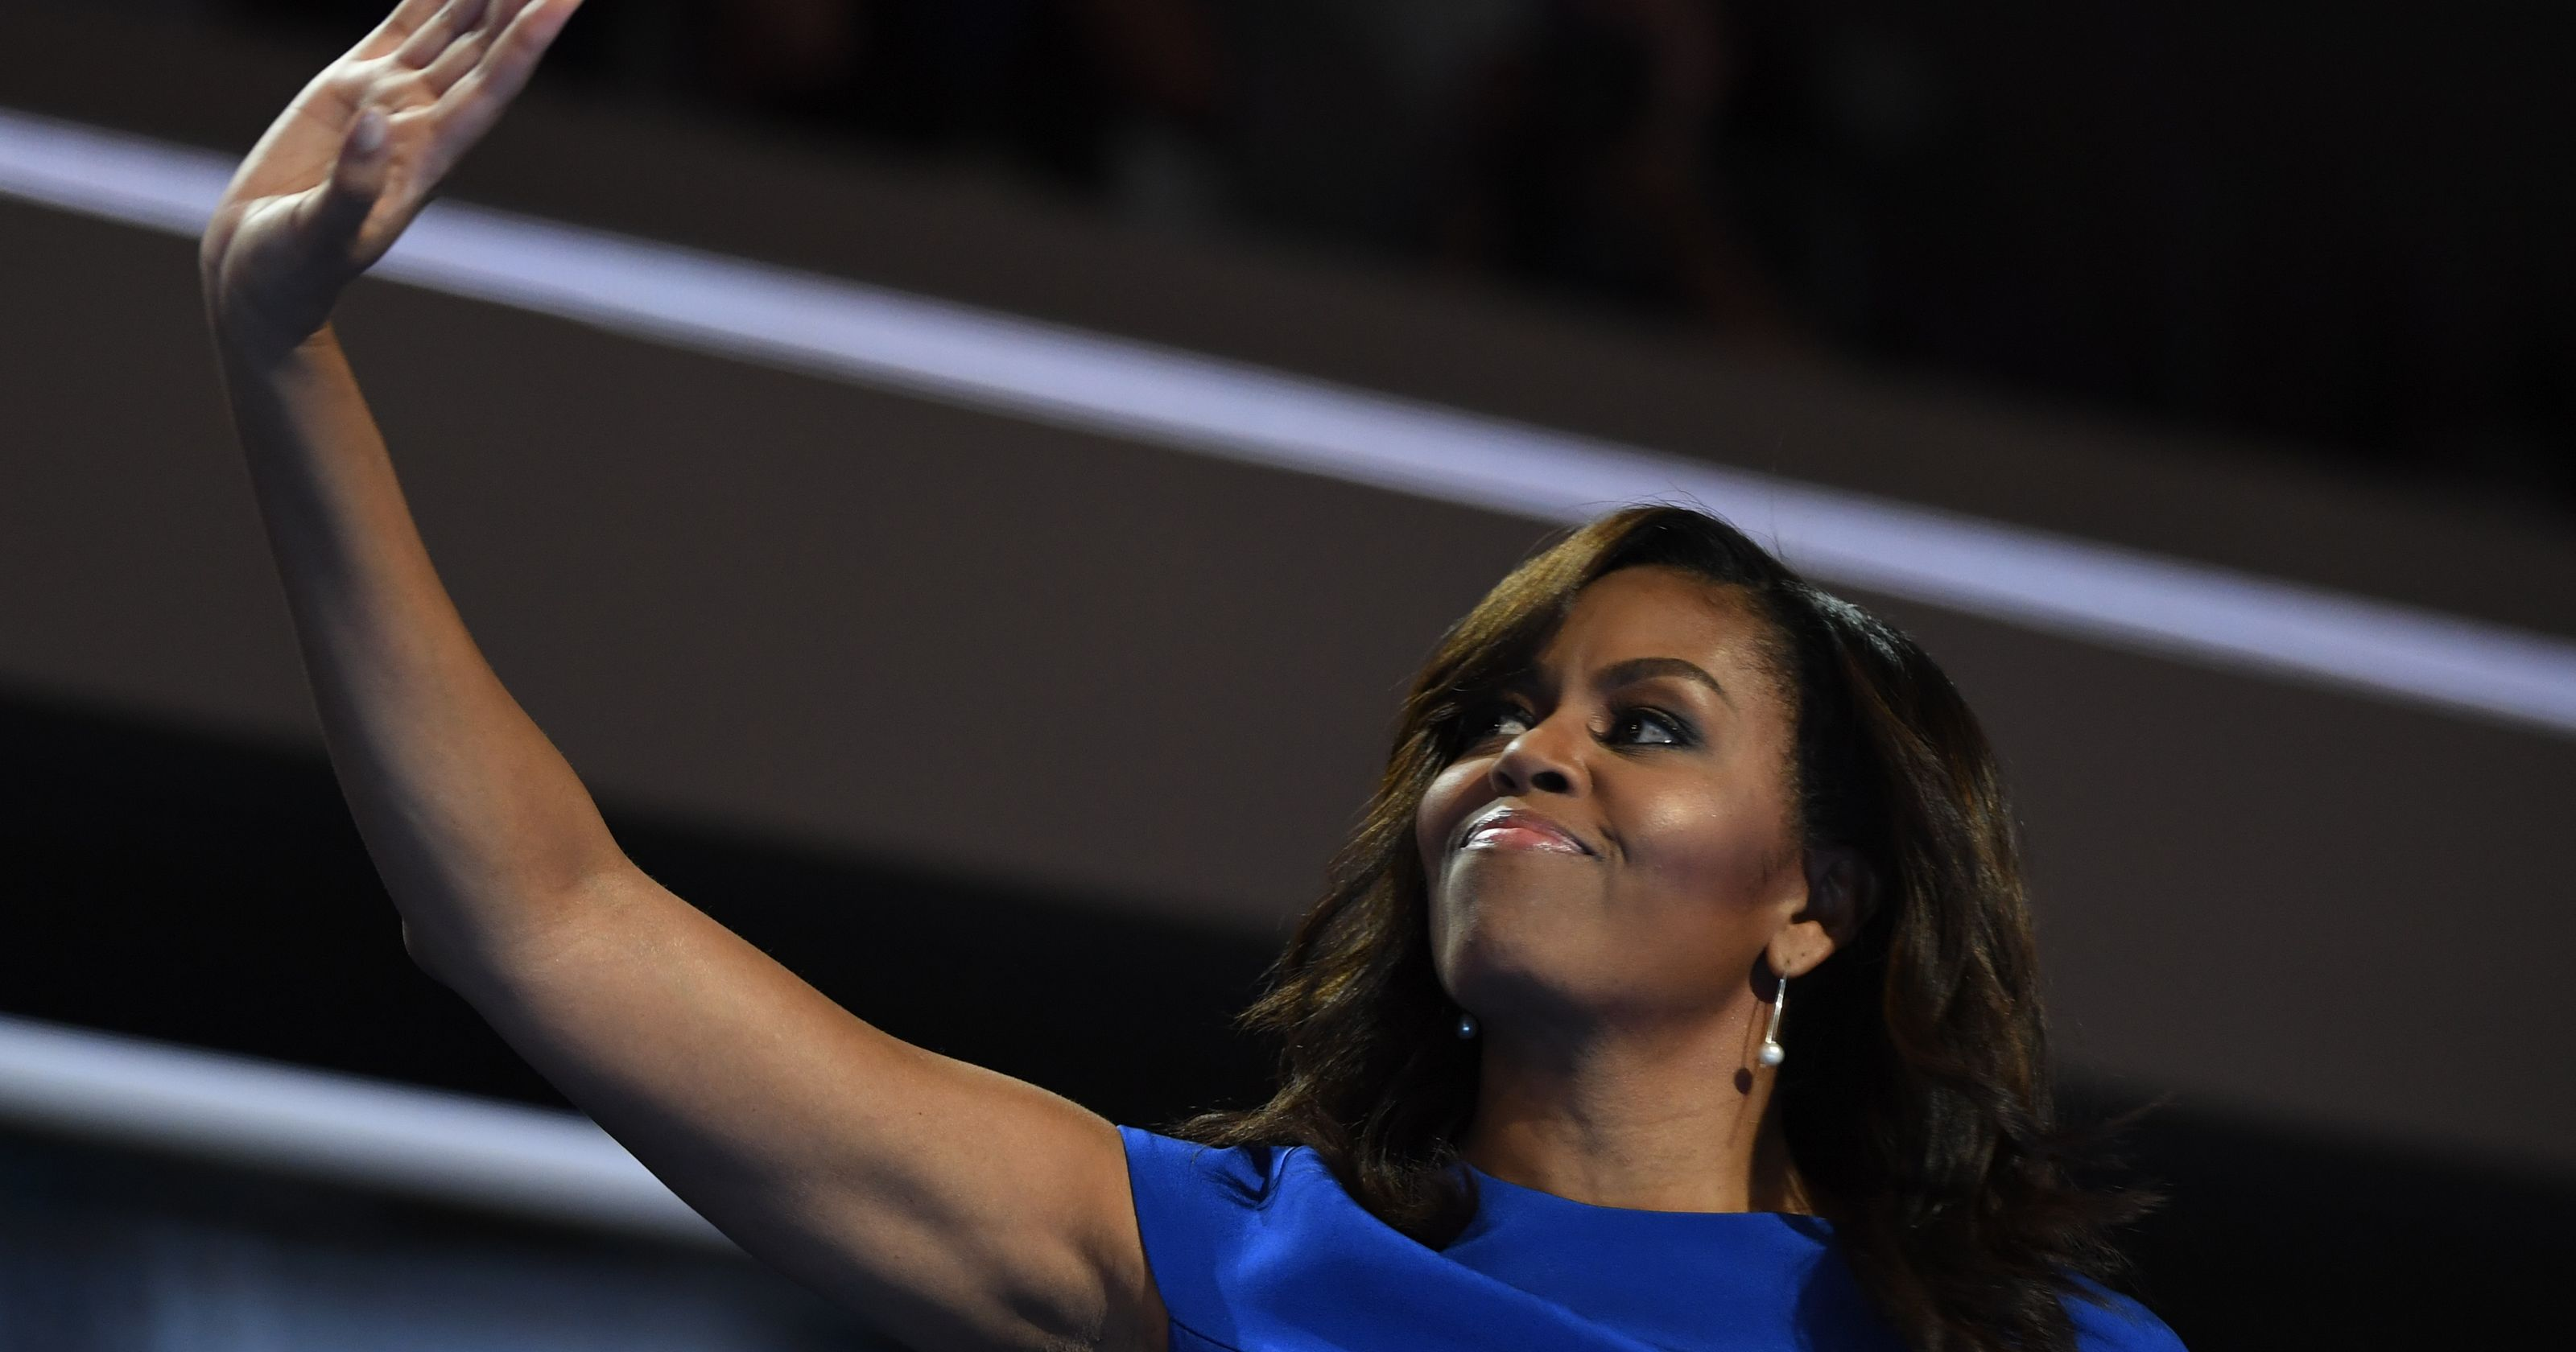 3200x1680 - Michelle Obama Wallpapers 13